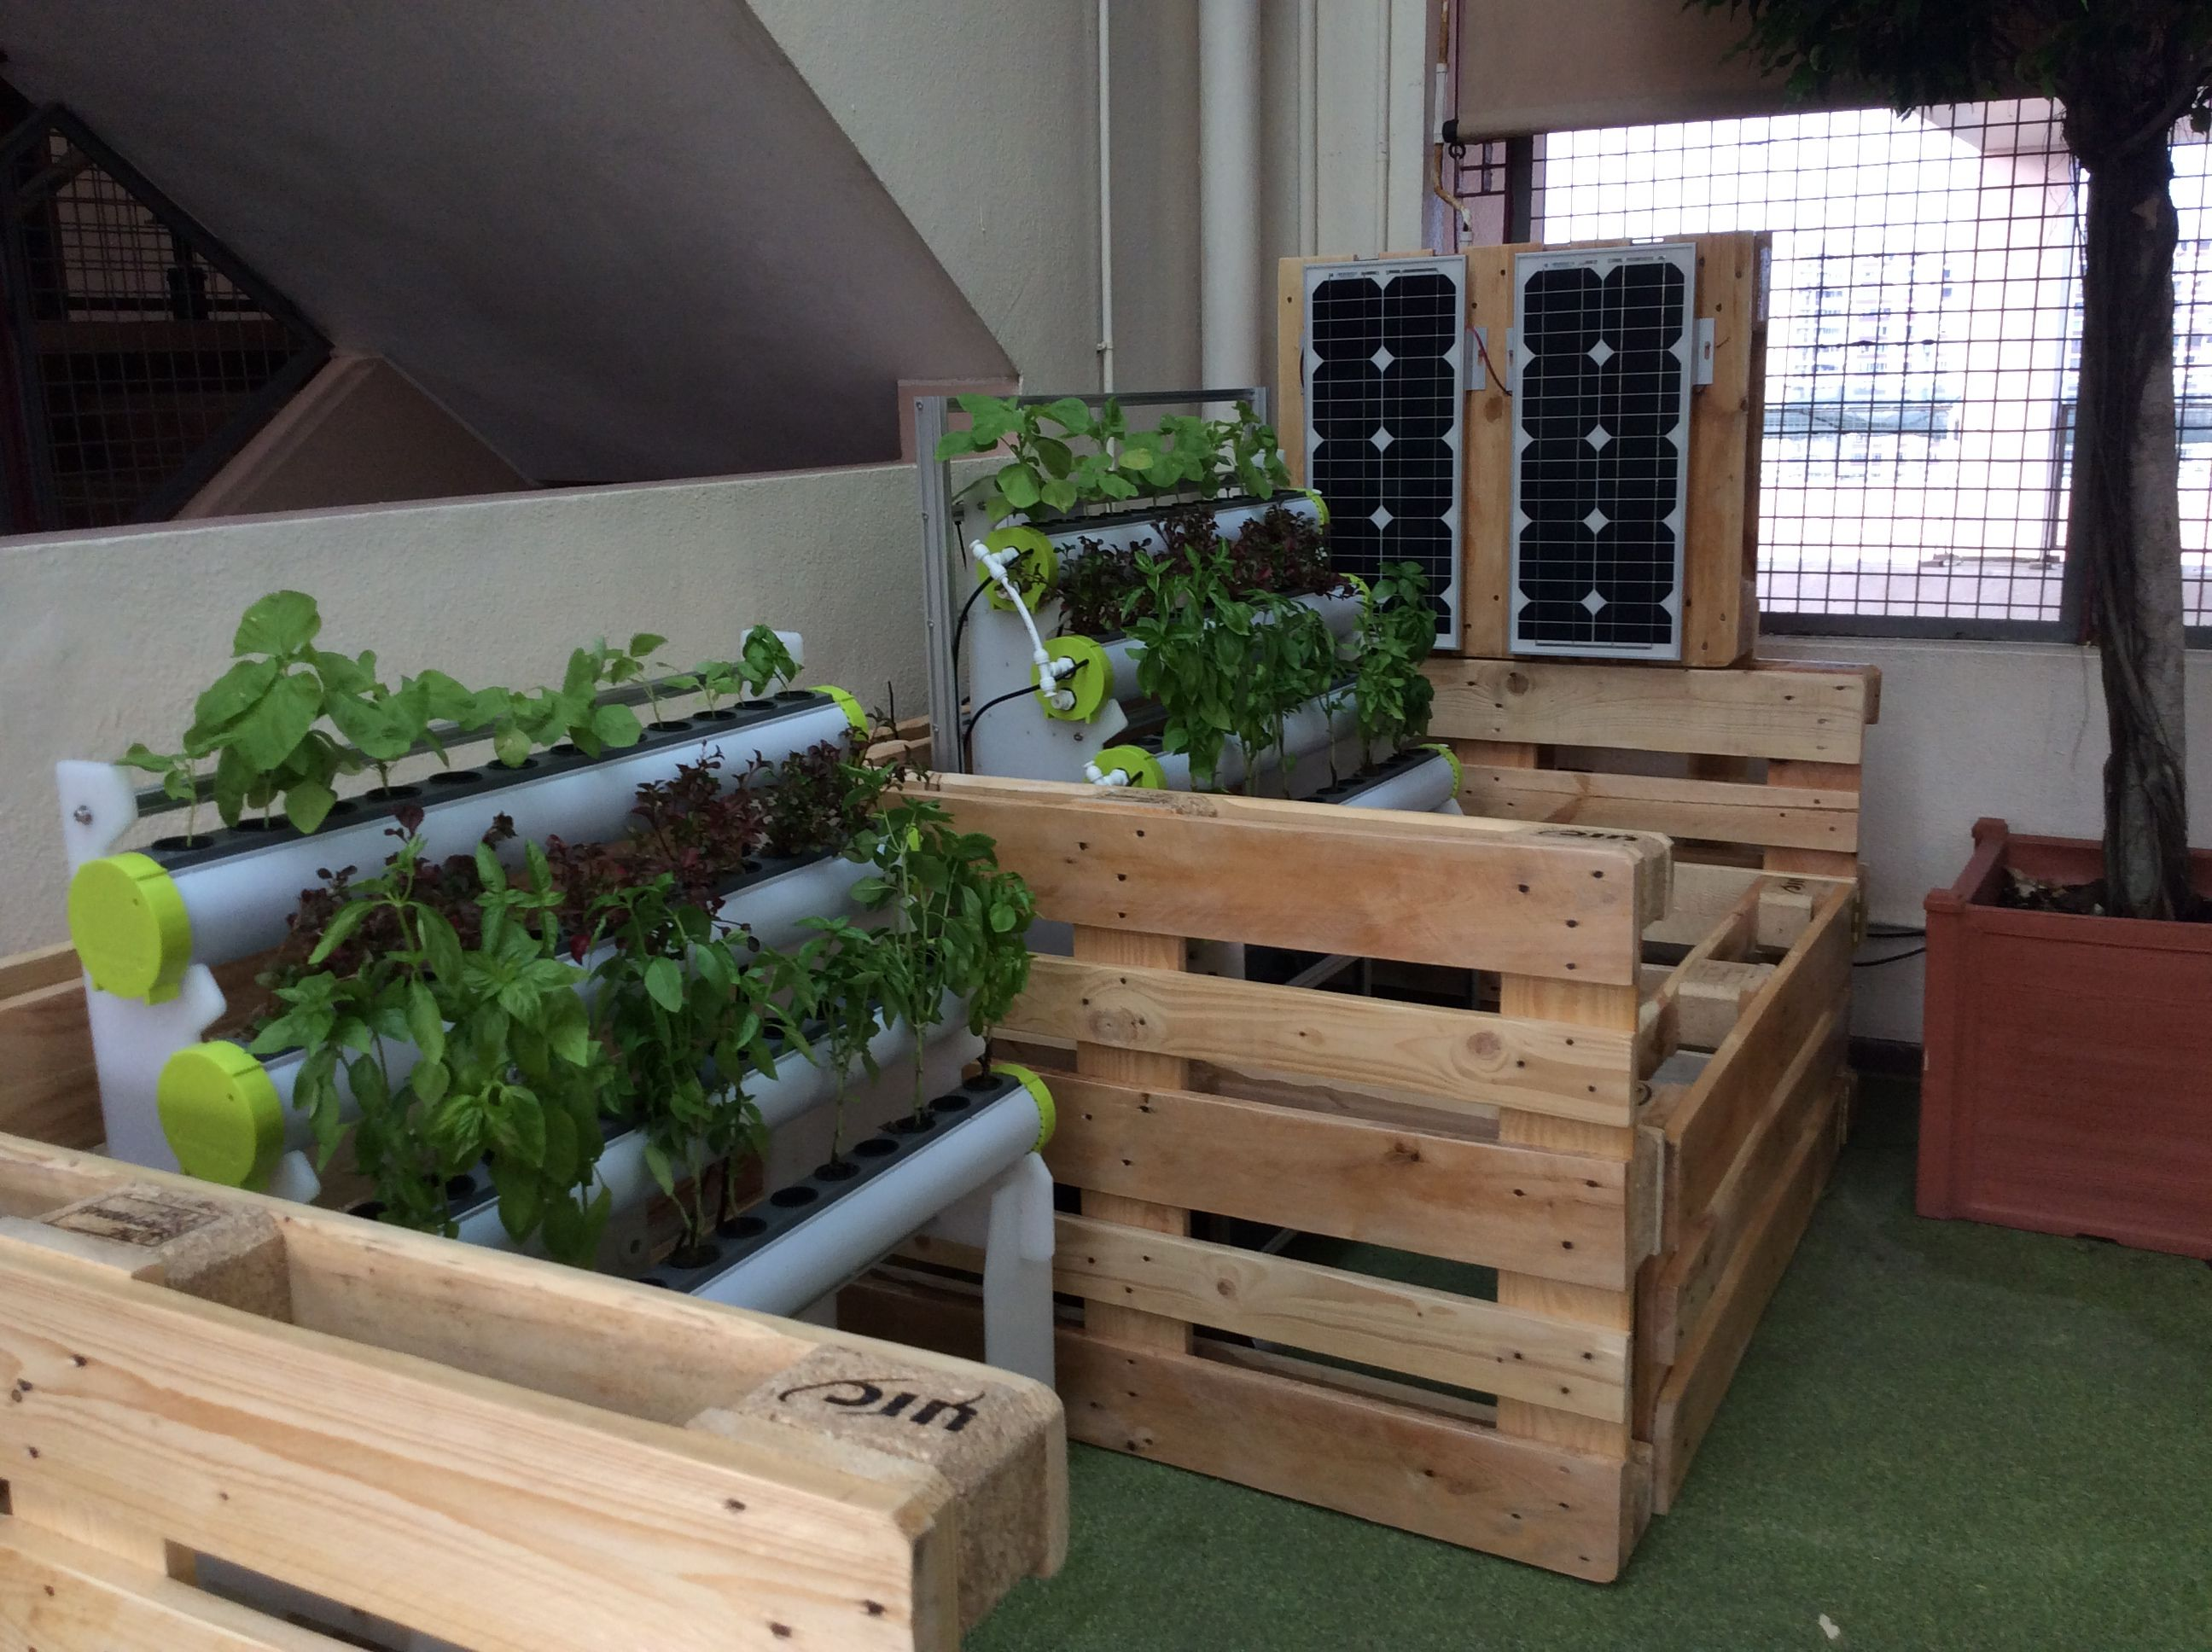 the solar powered hydropro hydroponics and aquaponics systems